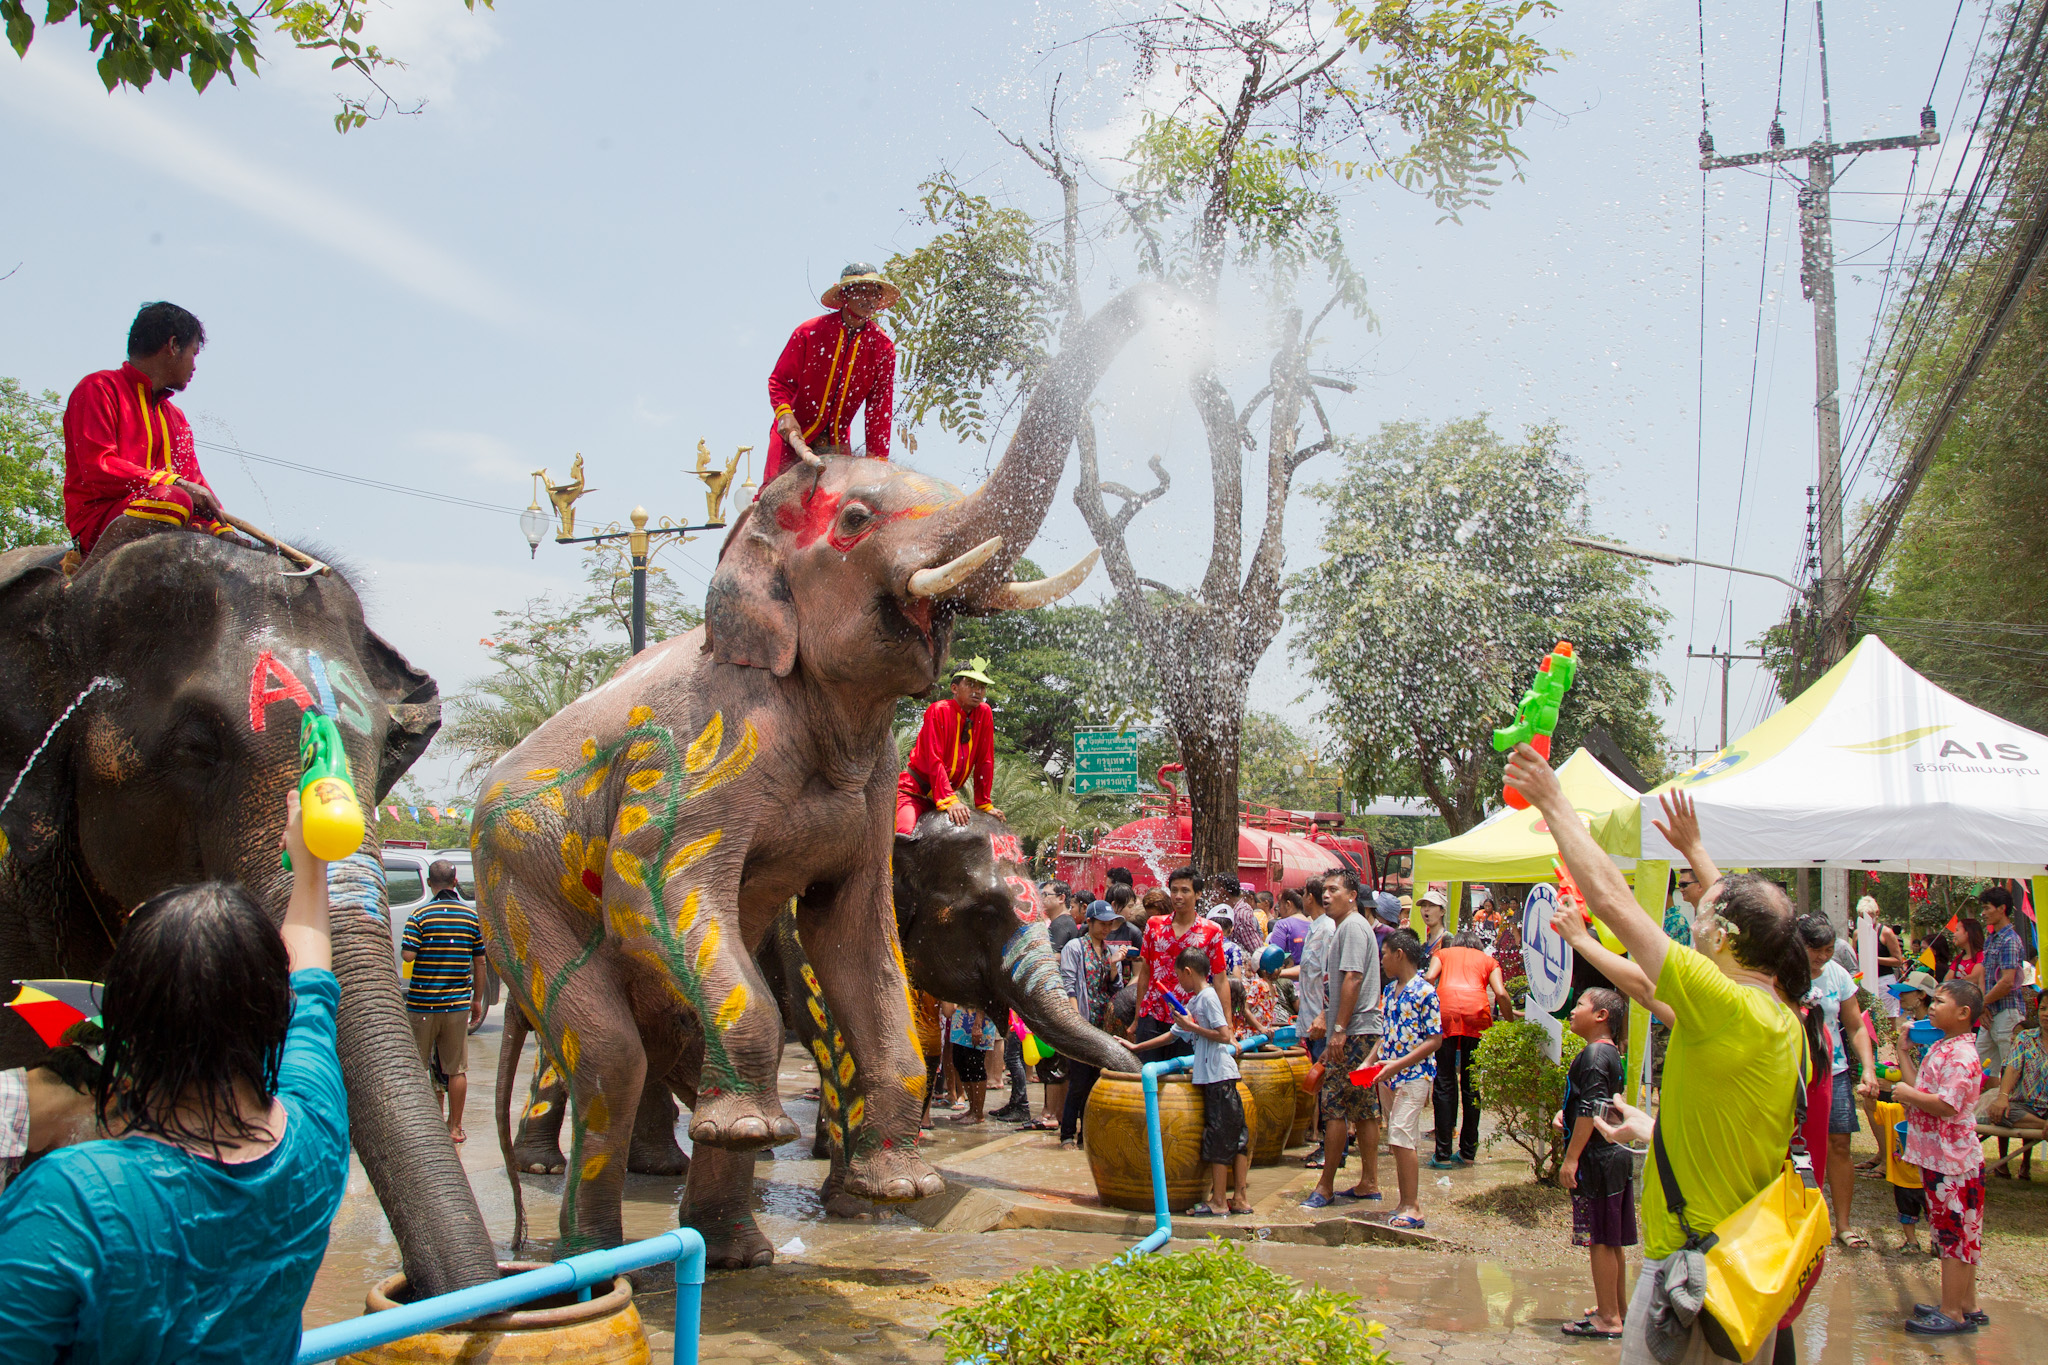 File:SONGKRAN 12 - Ayutthaya.jpg - Wikimedia Commons